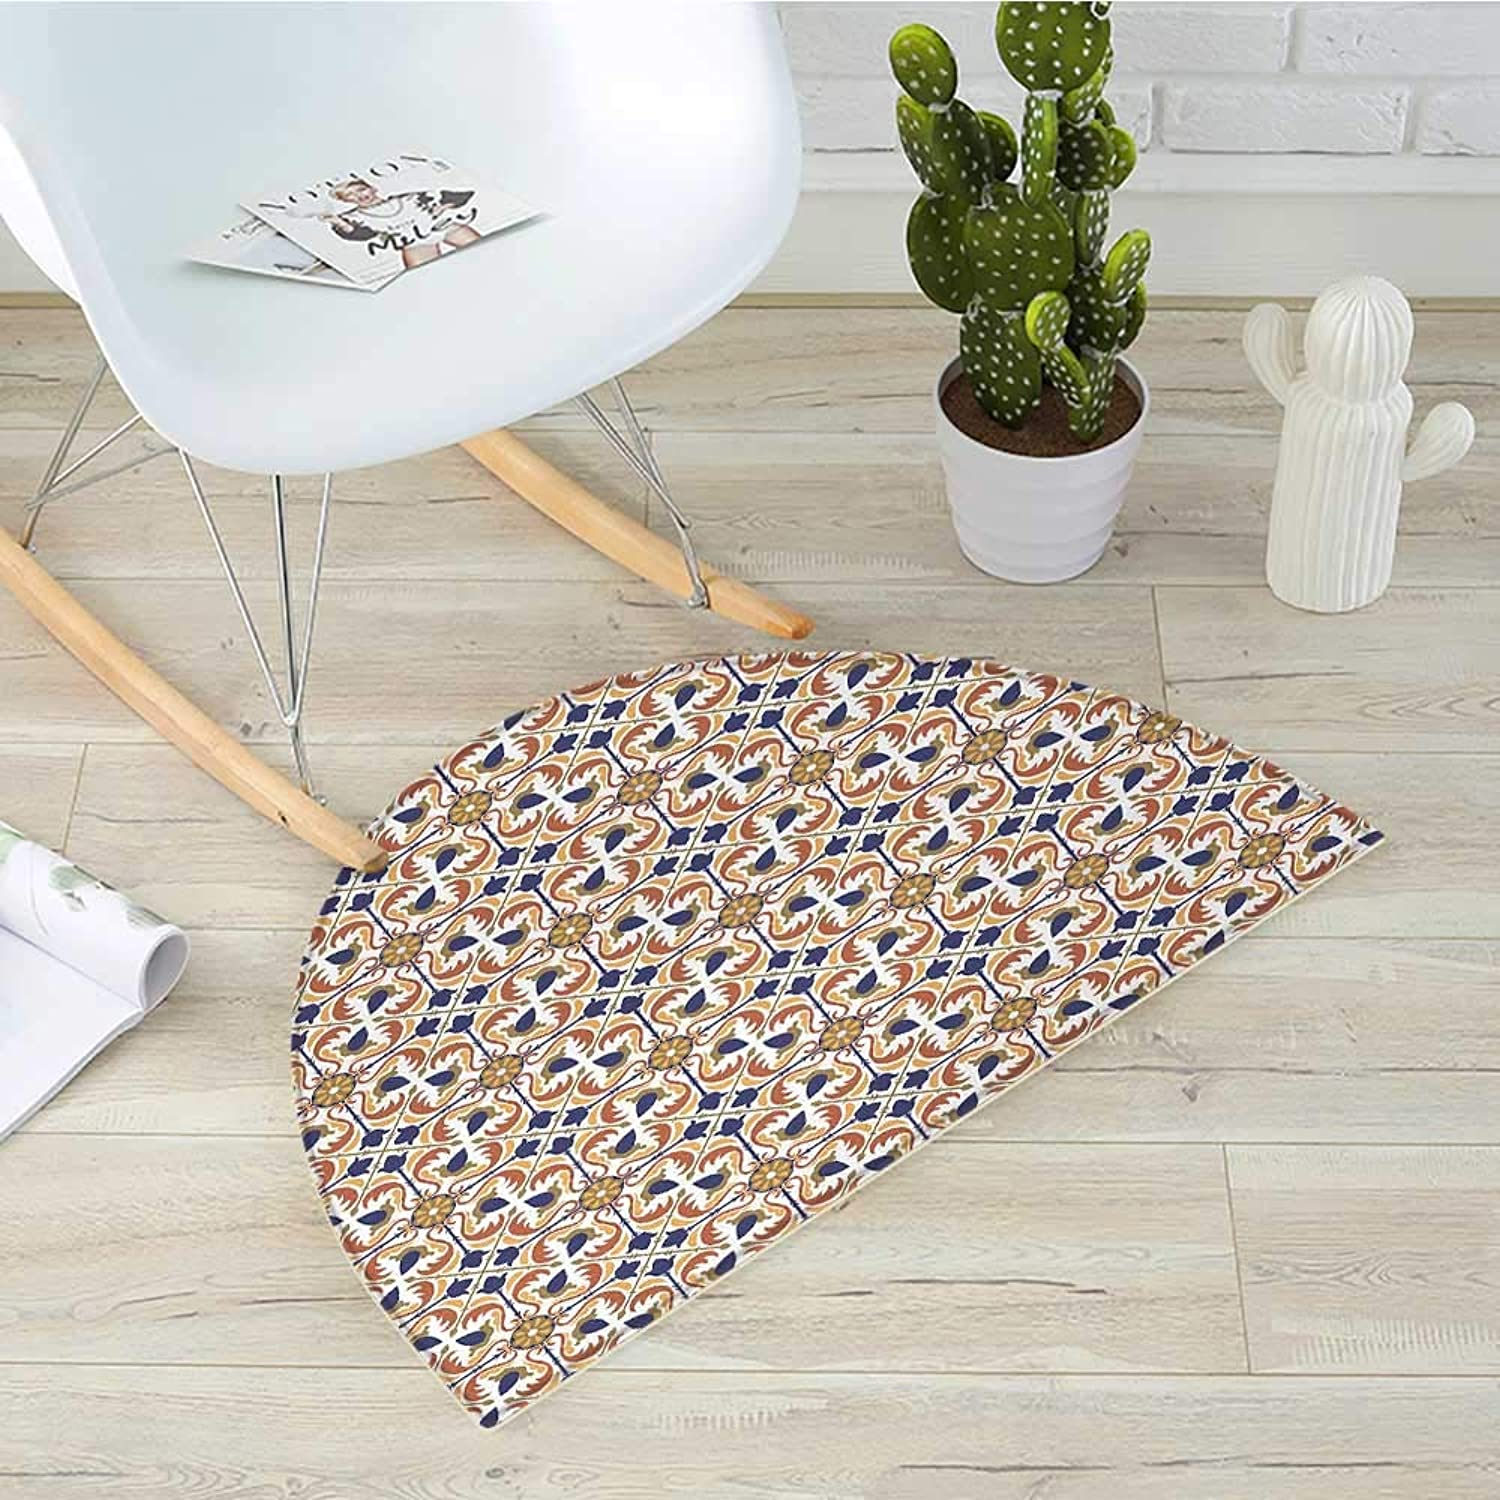 Mgoldccan Semicircular CushionTraditional Mosaic Tile Motif with Old Fashioned Floral Arabesque Scroll Design Entry Door Mat H 39.3  xD 59  Multicolor